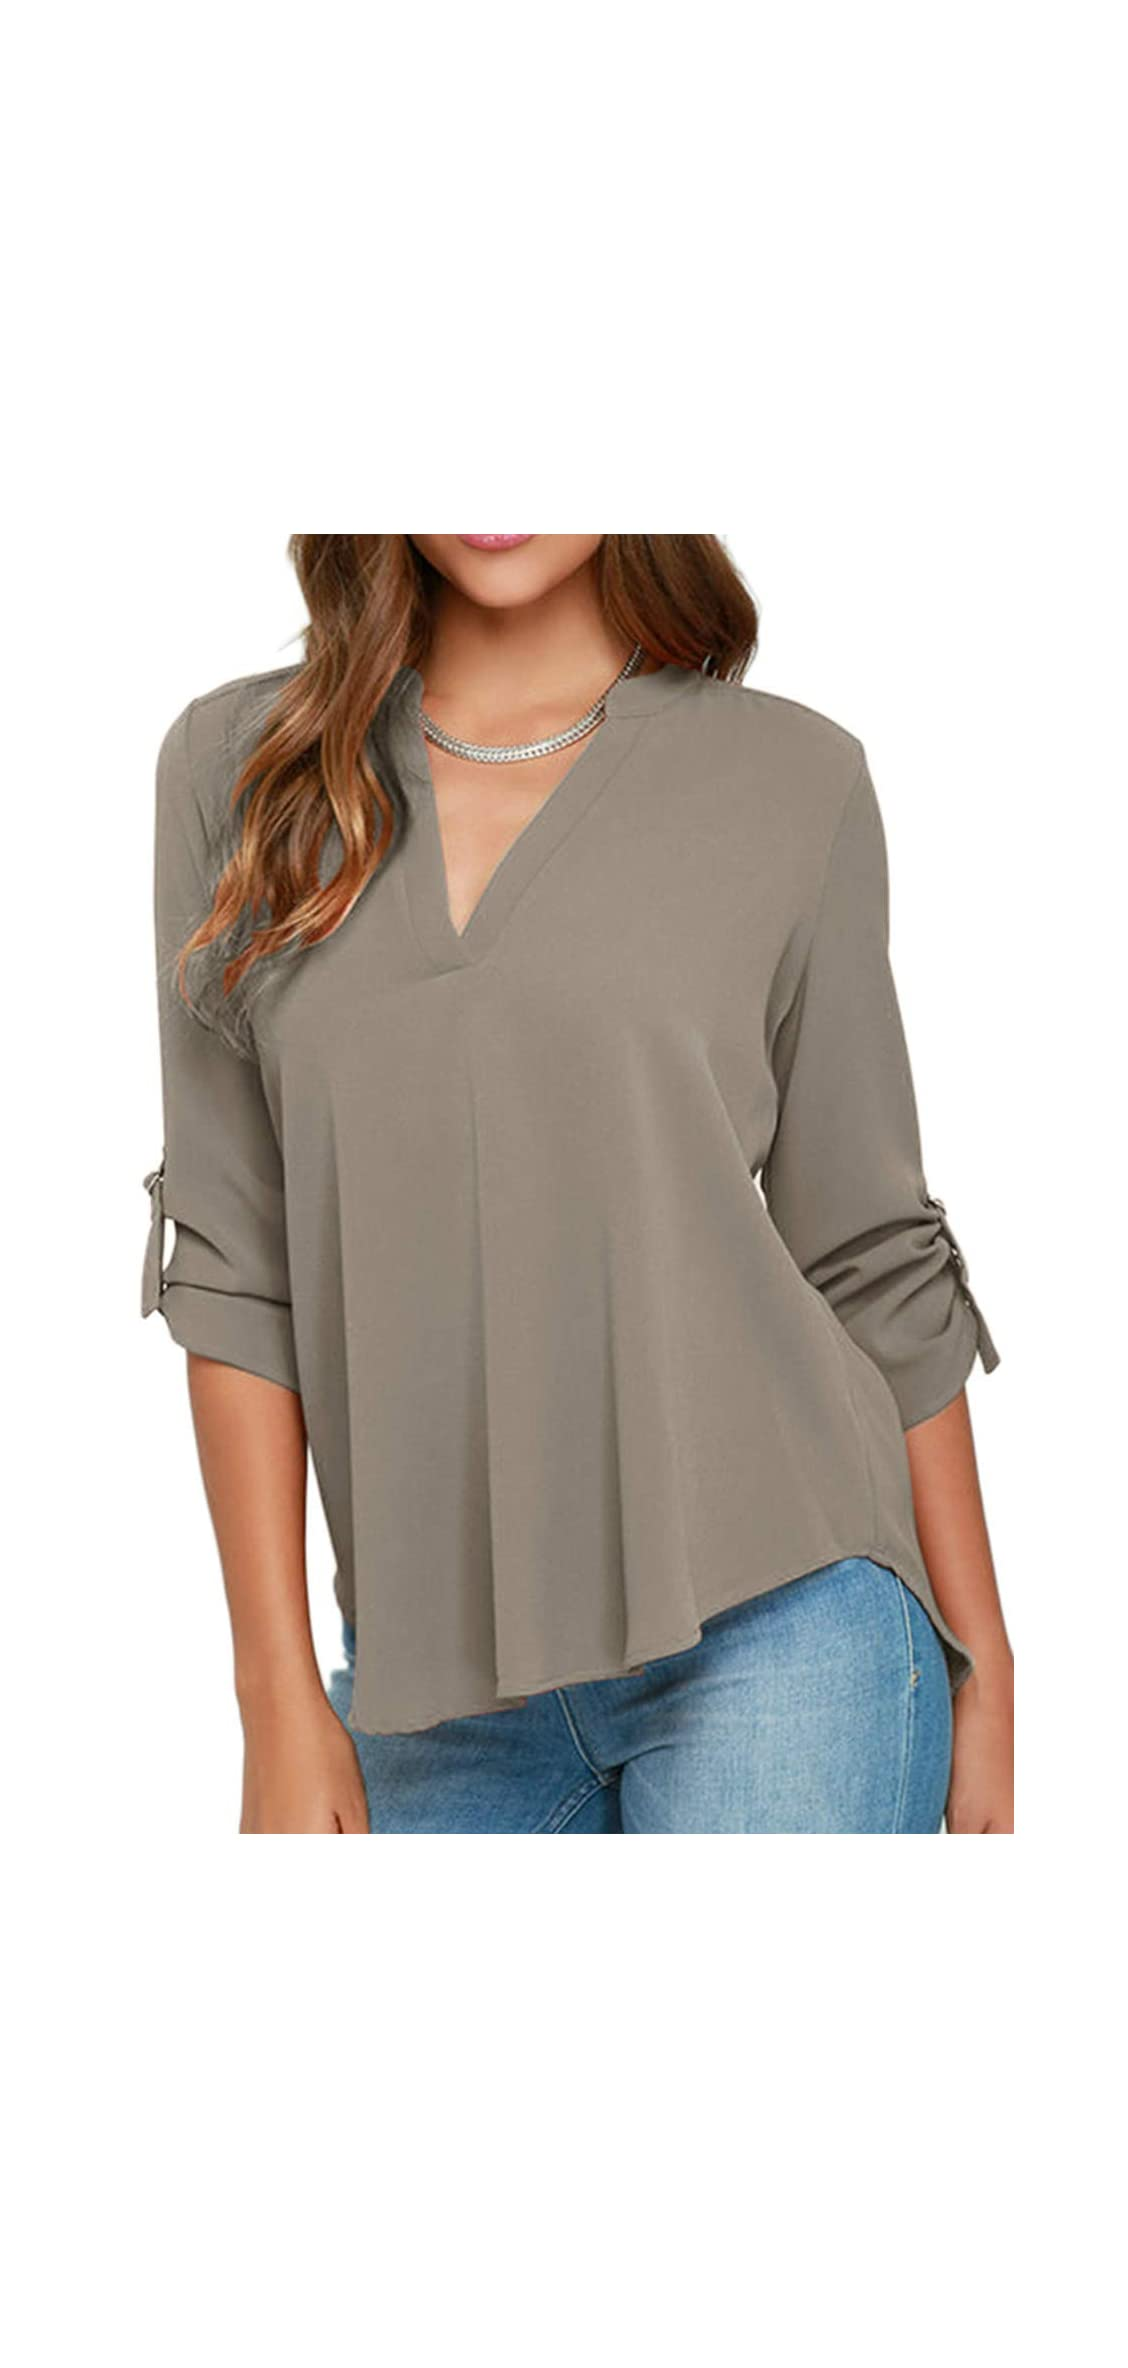 Women's V Neck Casual Chiffon Blouses Solid Roll Up Tops